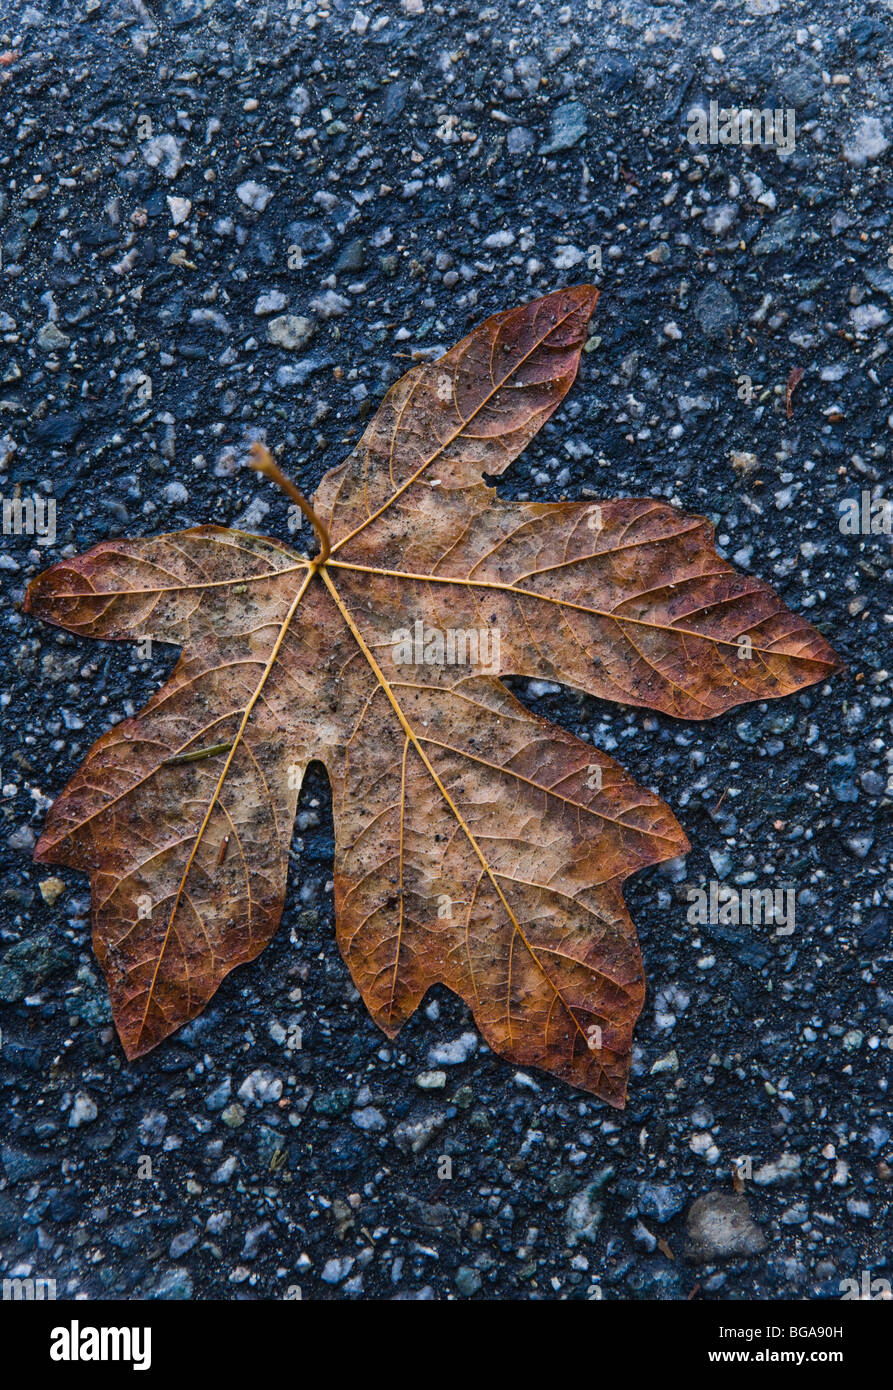 A dampend flattened Maple leaf on an asphalt pathway. Vancouver, BC, Canada. Stock Photo